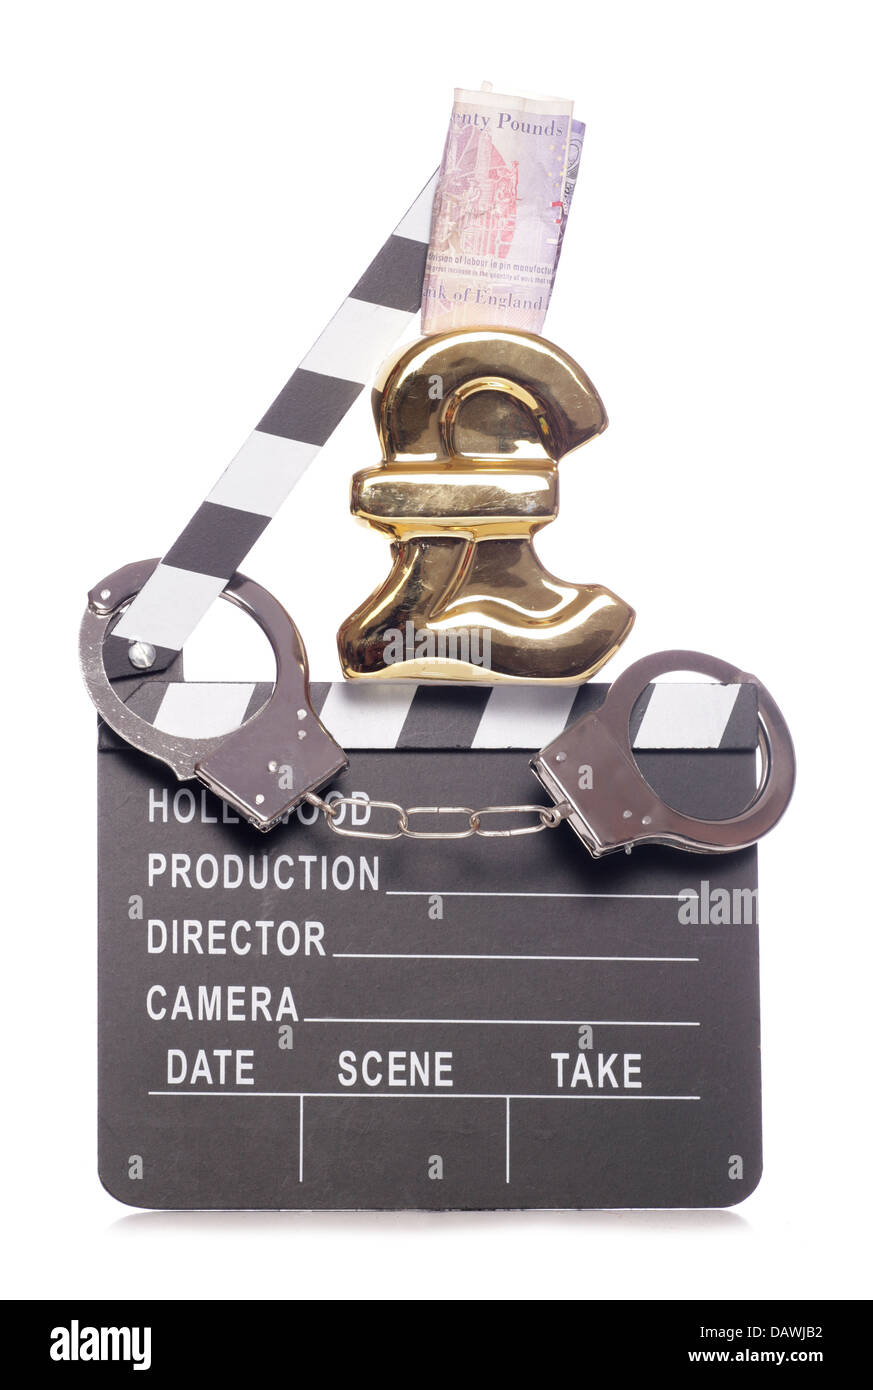 Piracy in the film industry costing money cutout - Stock Image